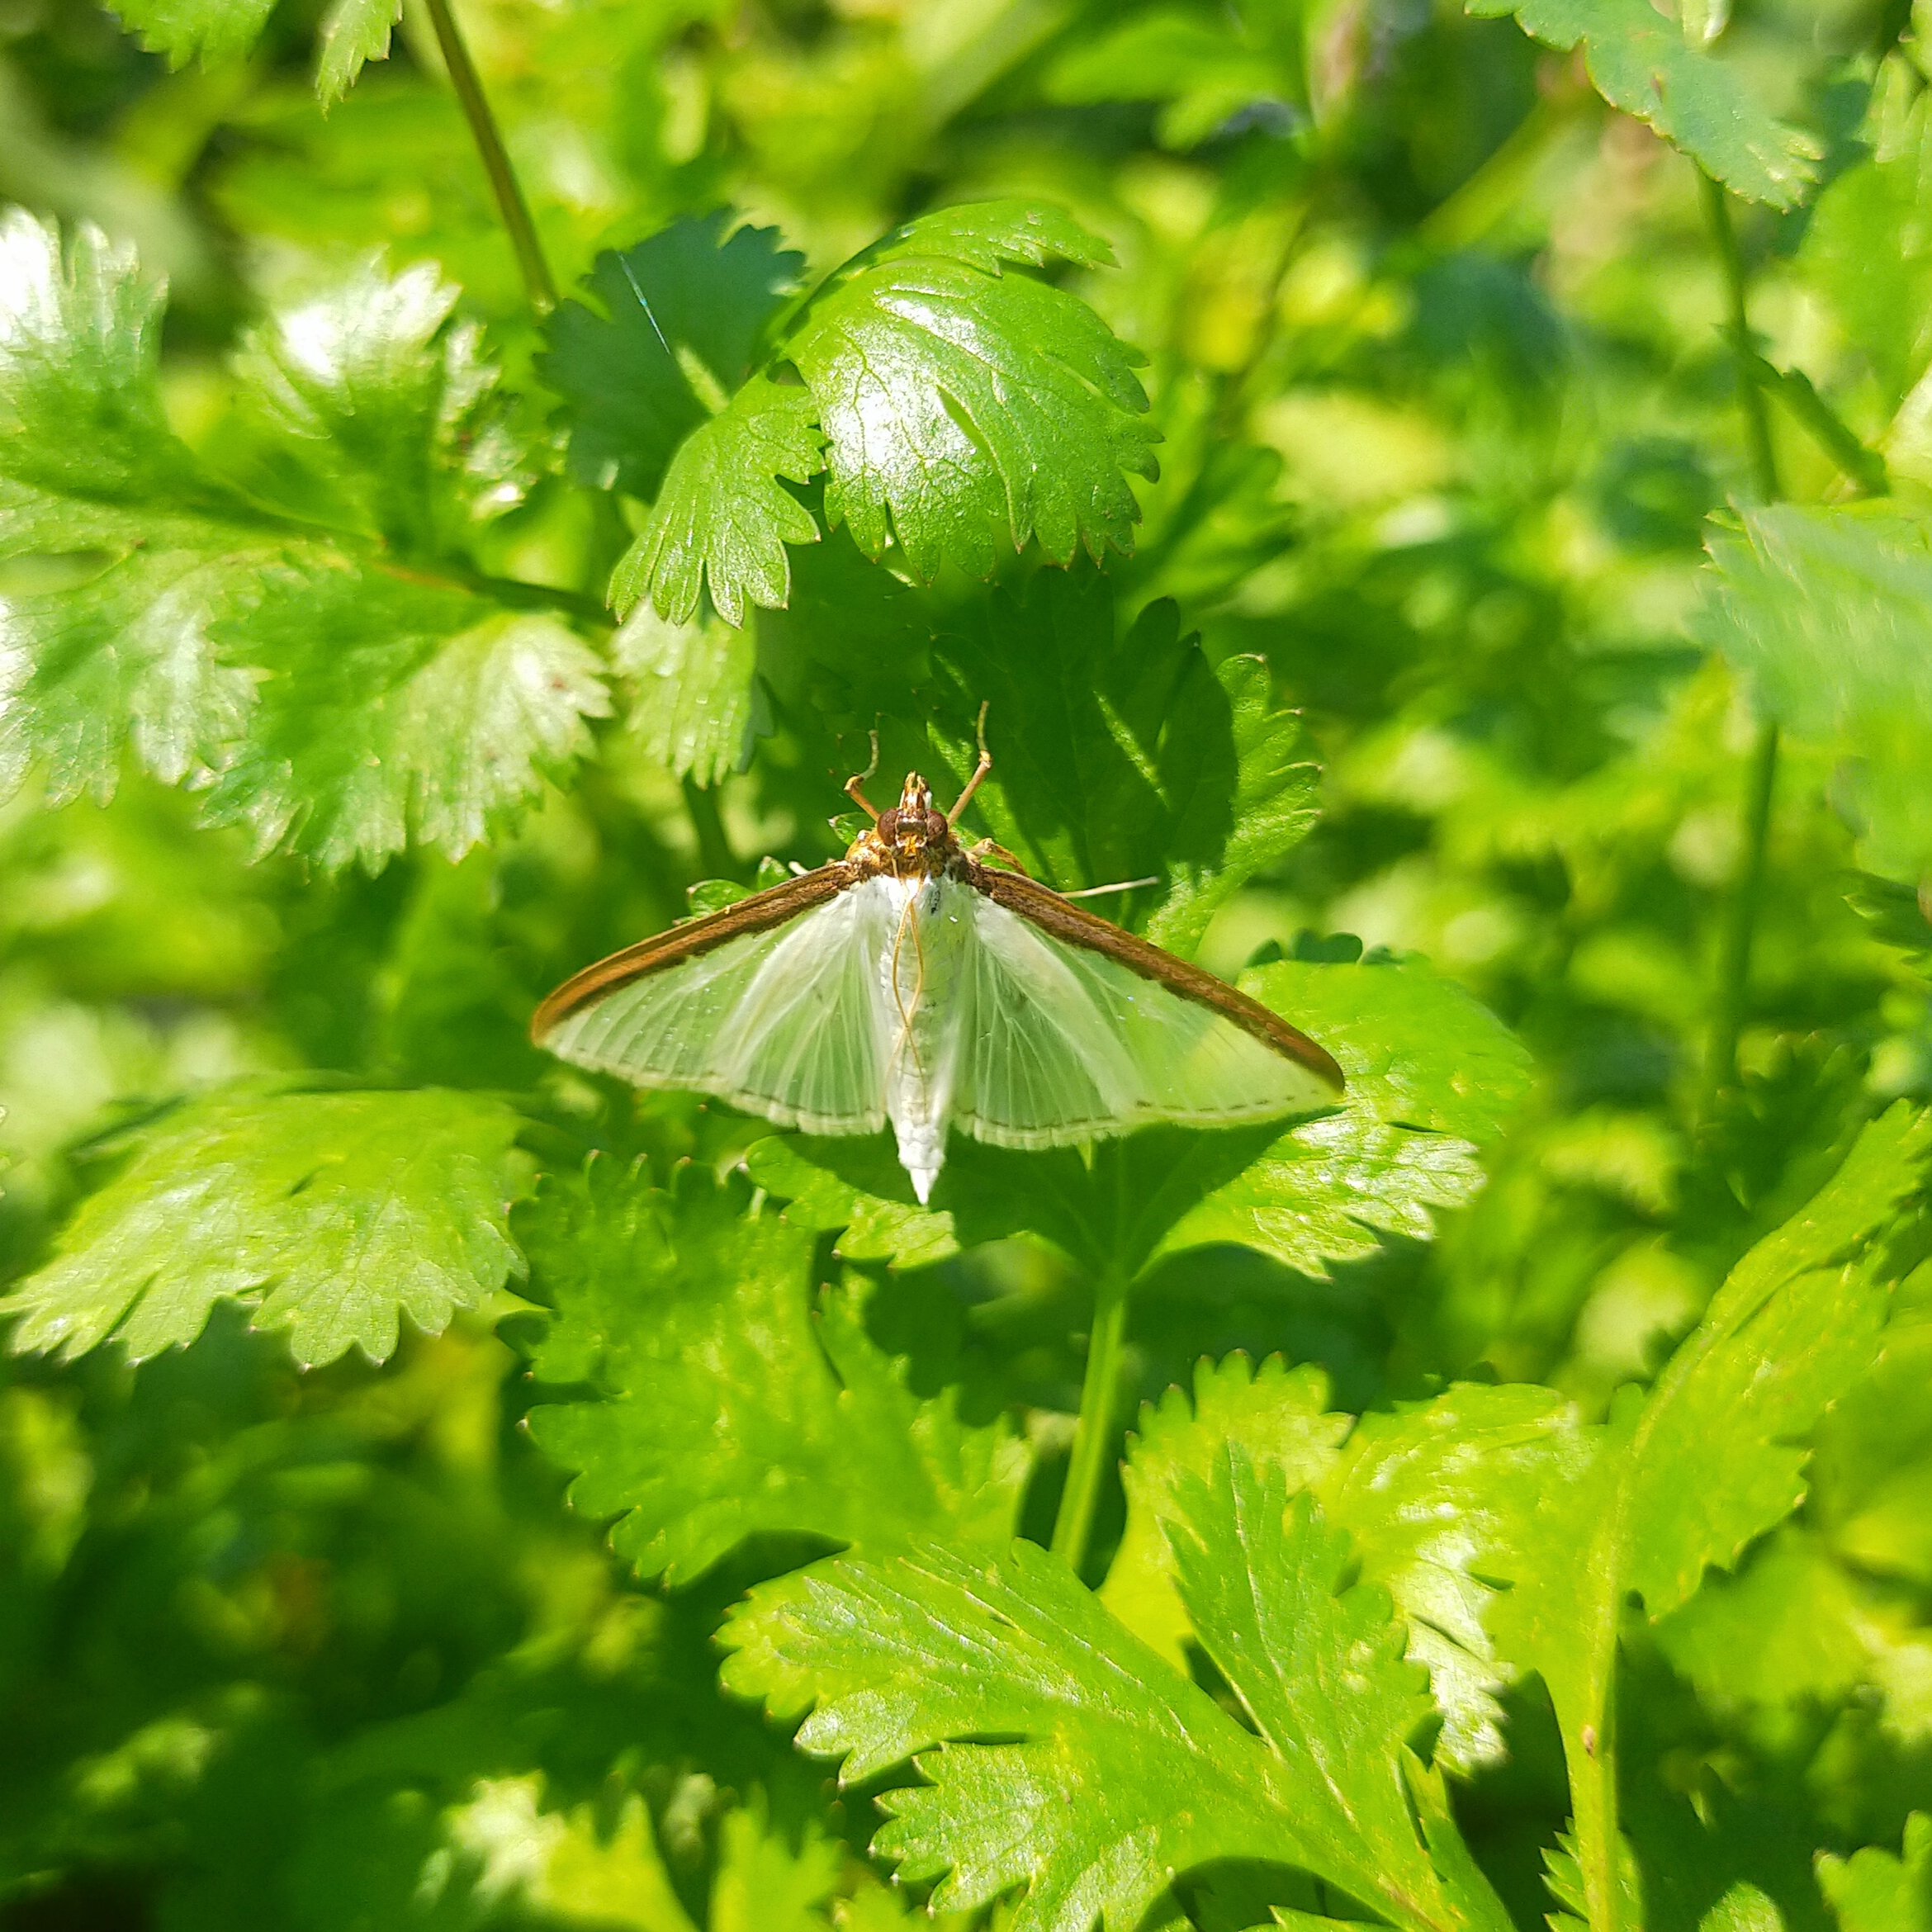 A butterfly on coriander leaves